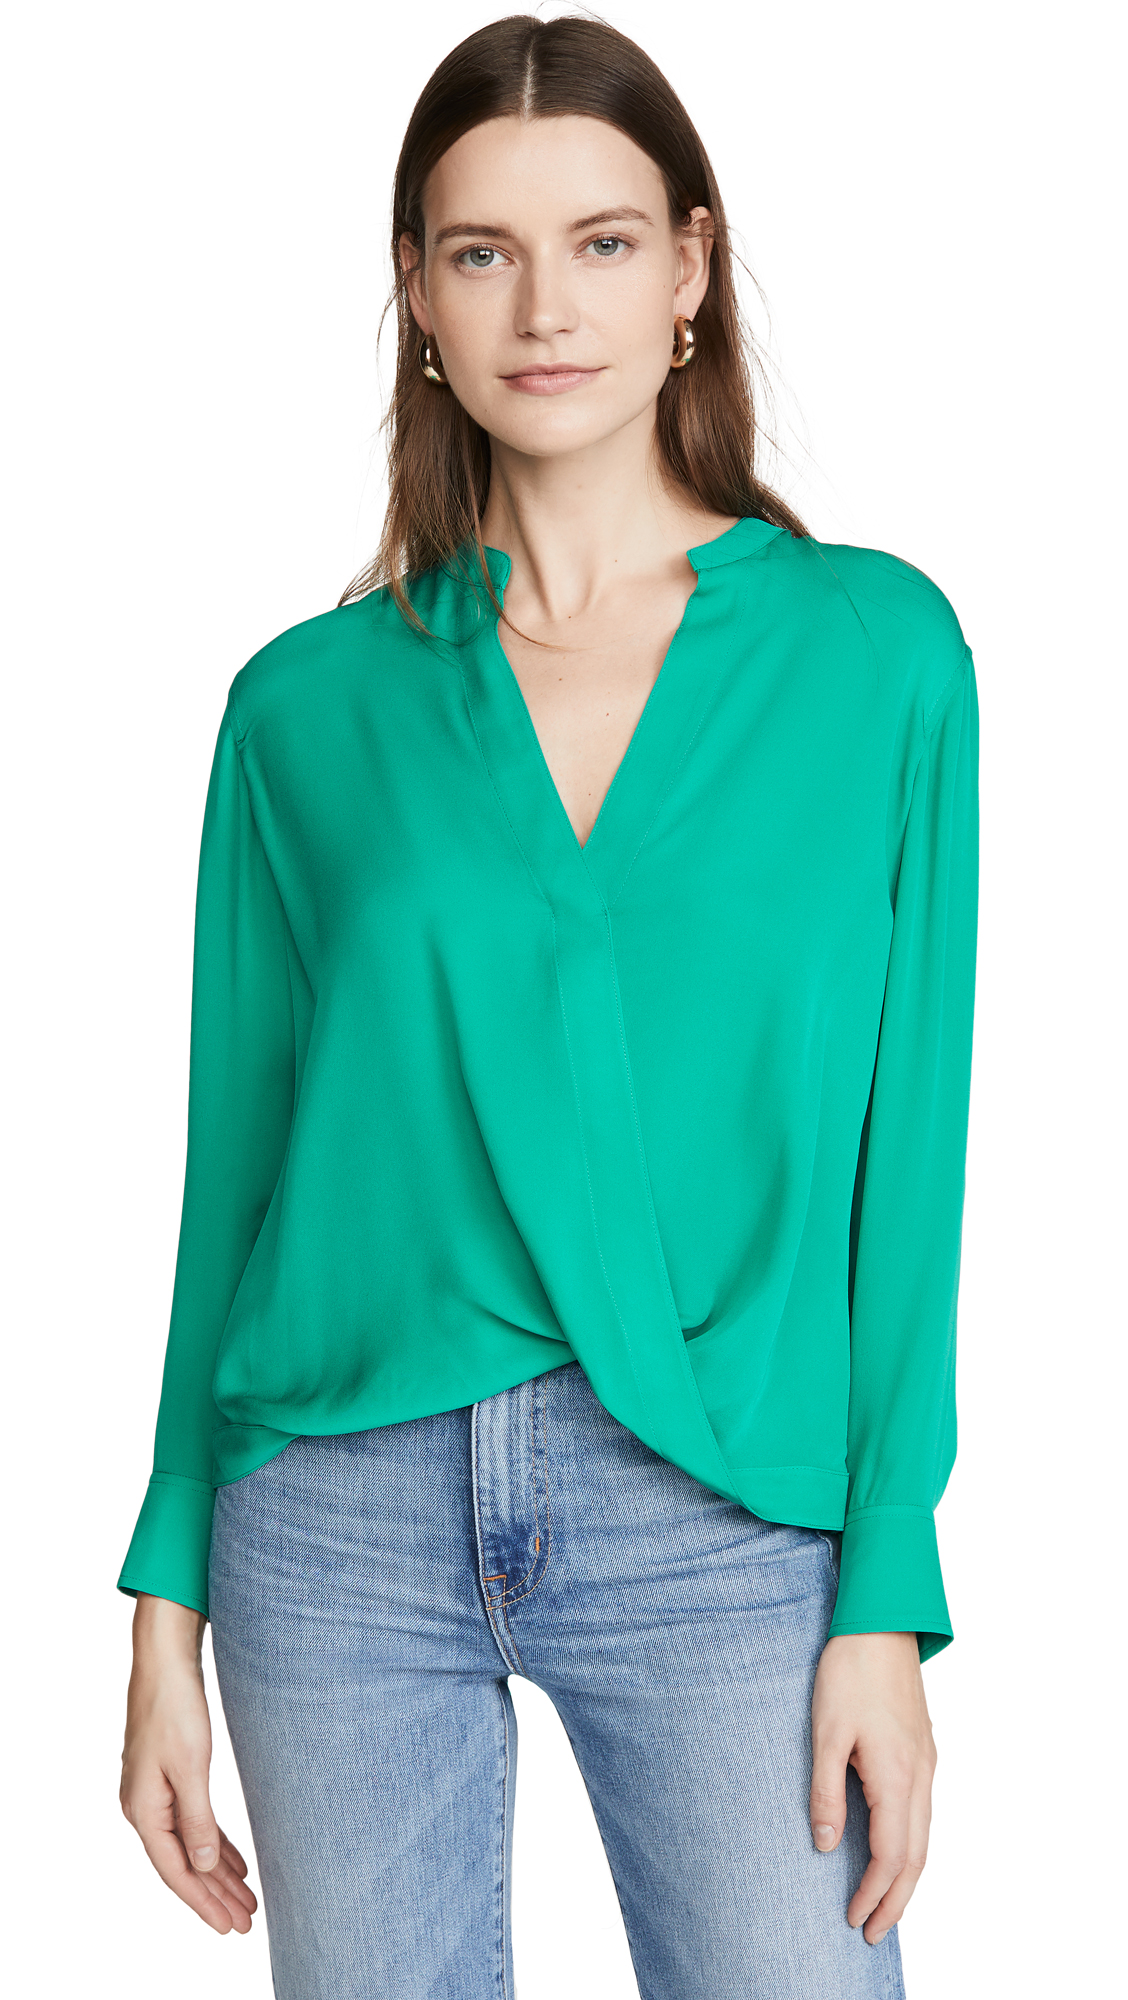 A.L.C. Luca Top – 50% Off Sale